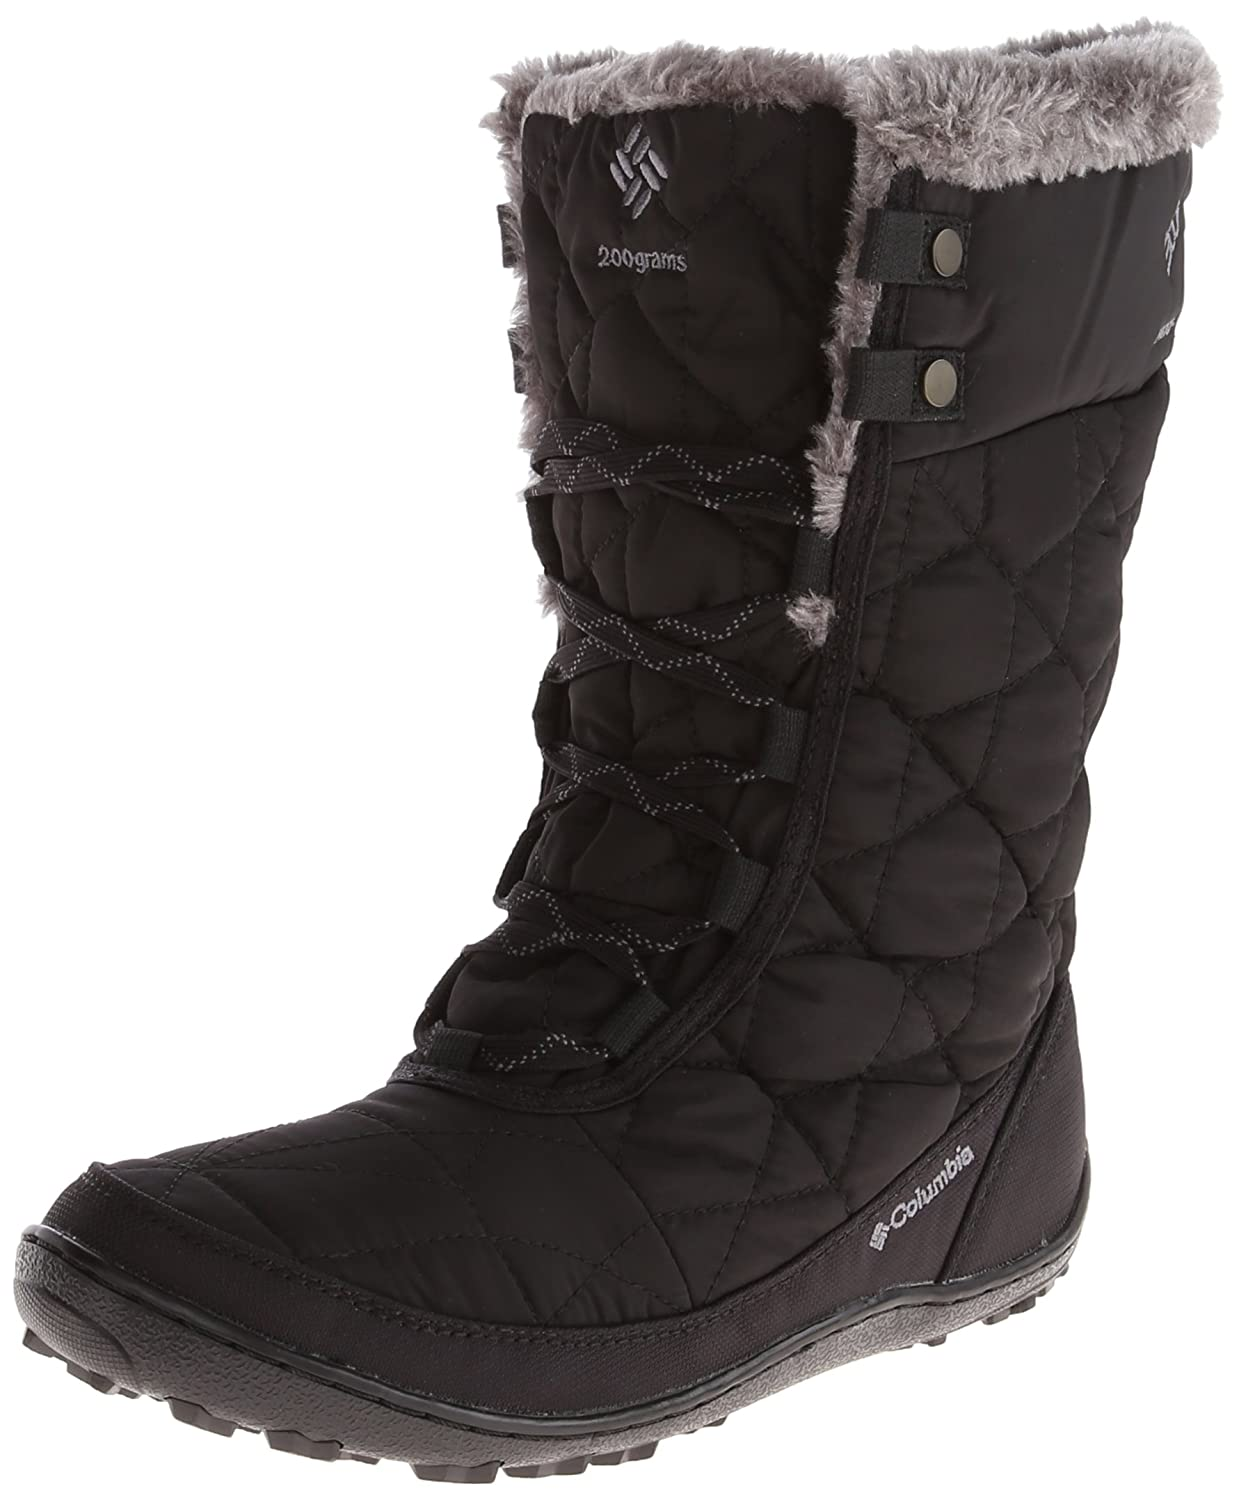 Columbia Women's Minx Mid II Omni-Heat Winter Boot B00GW8GHKG 6 B(M) US|Black, Charcoal